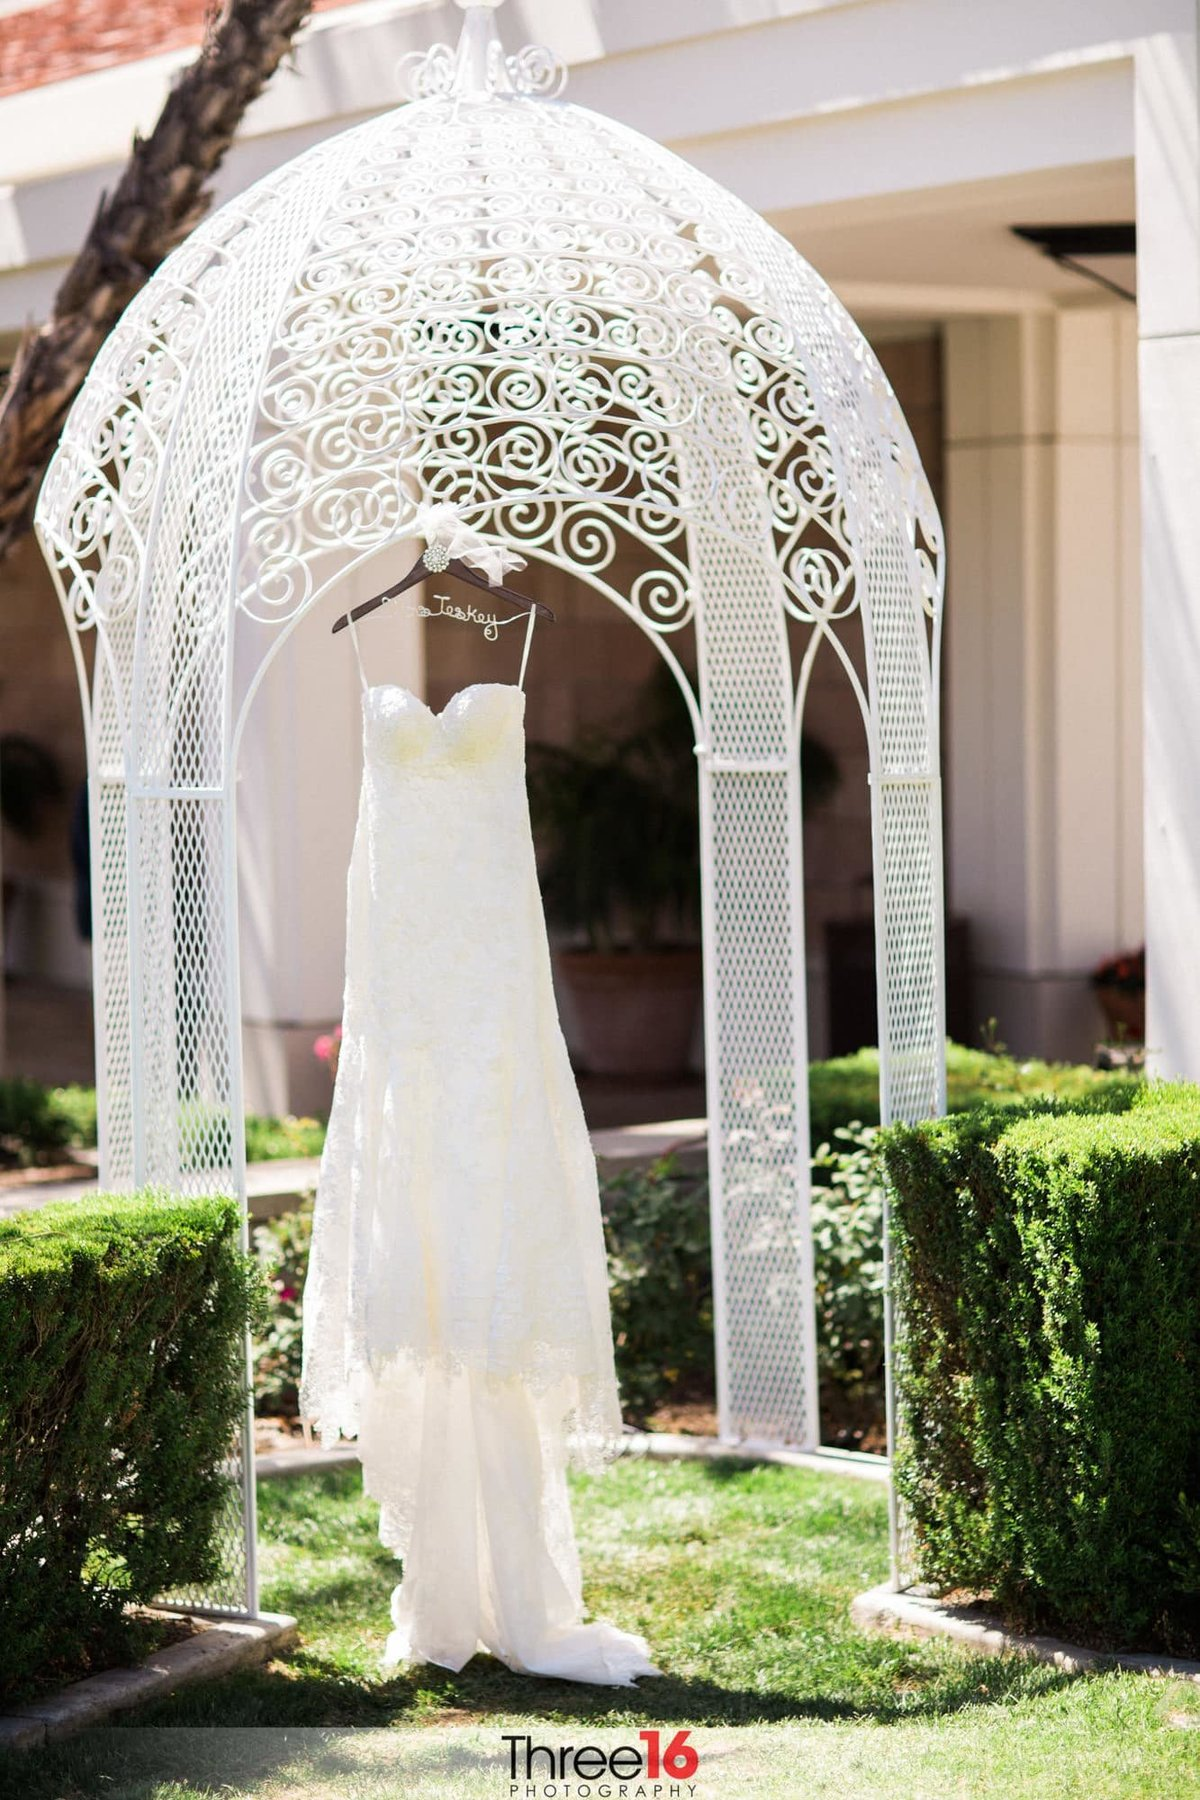 Bride wedding dress hangs on display under a small gazebo